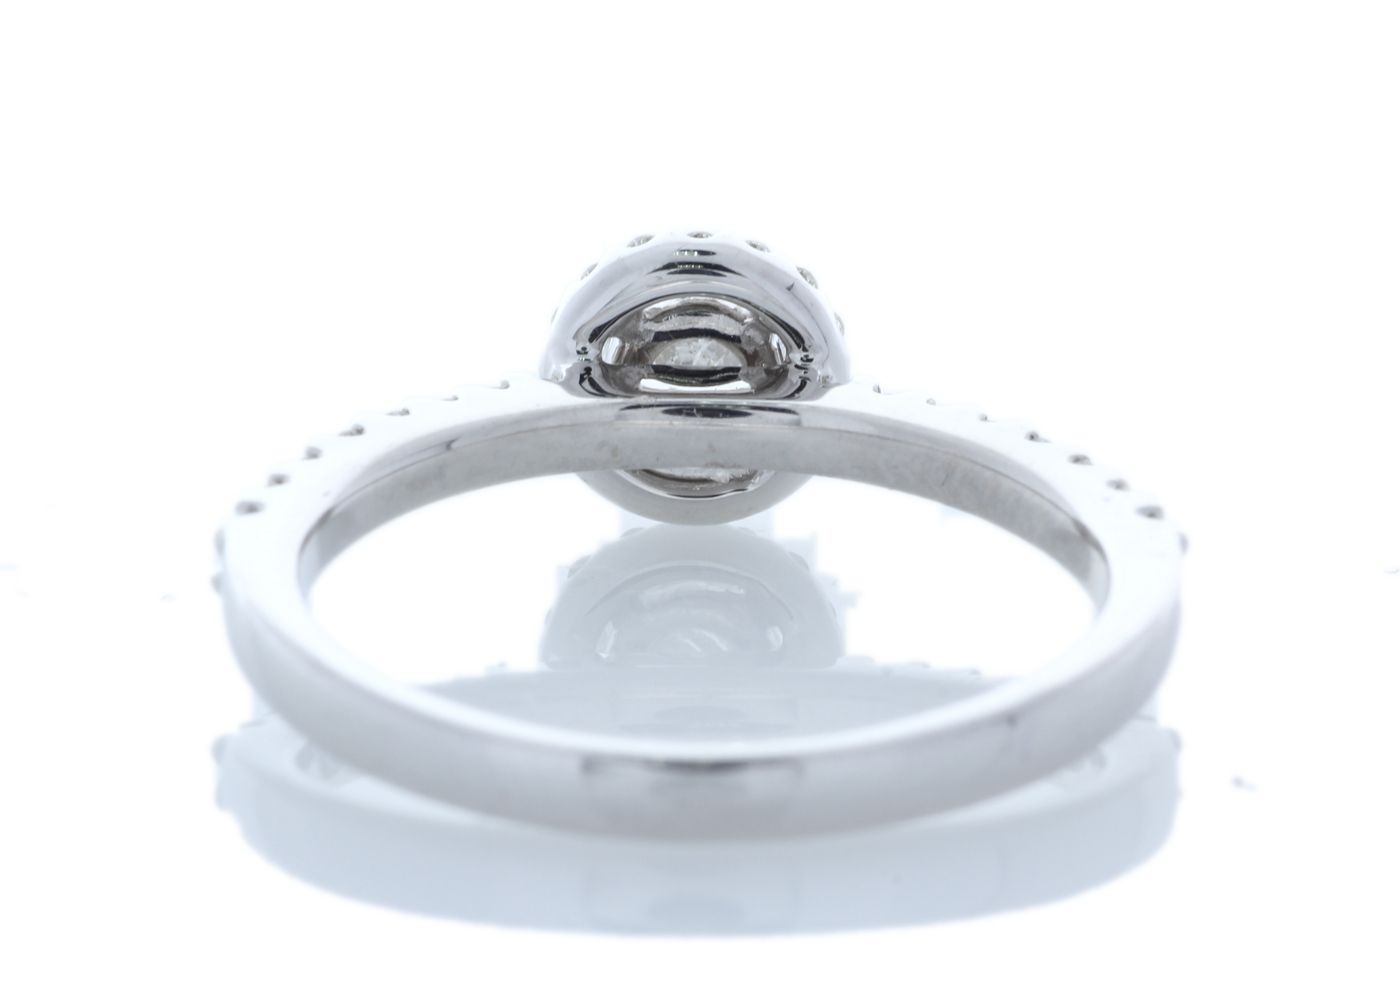 18ct White Gold Halo Set Ring 0.63 Carats - Image 3 of 5